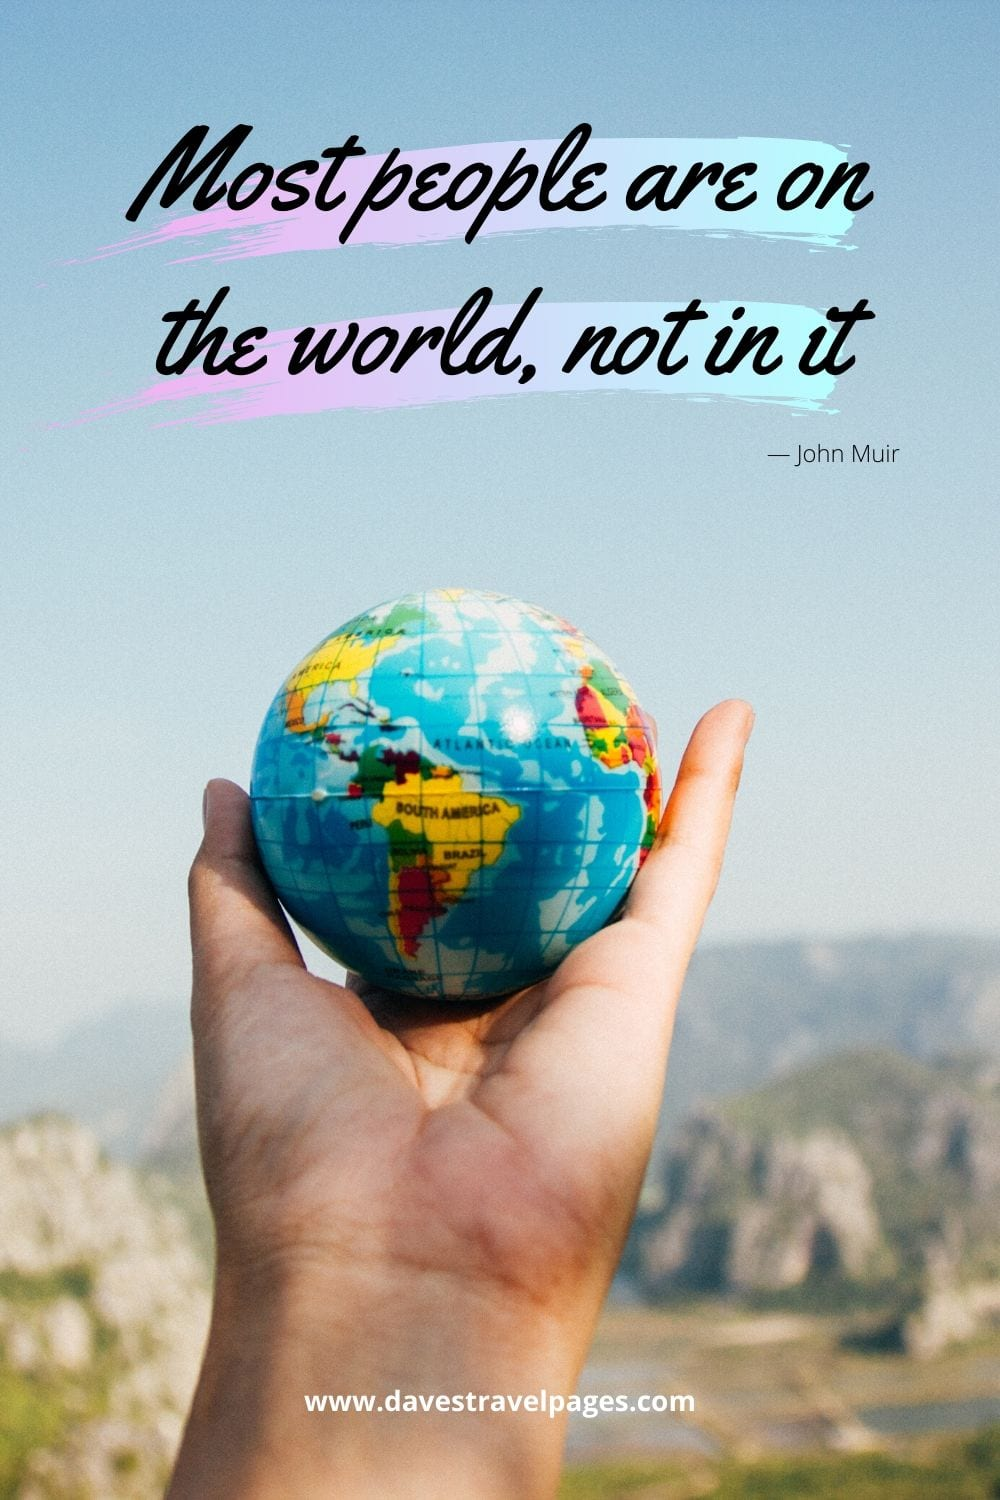 """Quotes about the word: """"Most people are on the world, not in it."""" ― John Muir"""